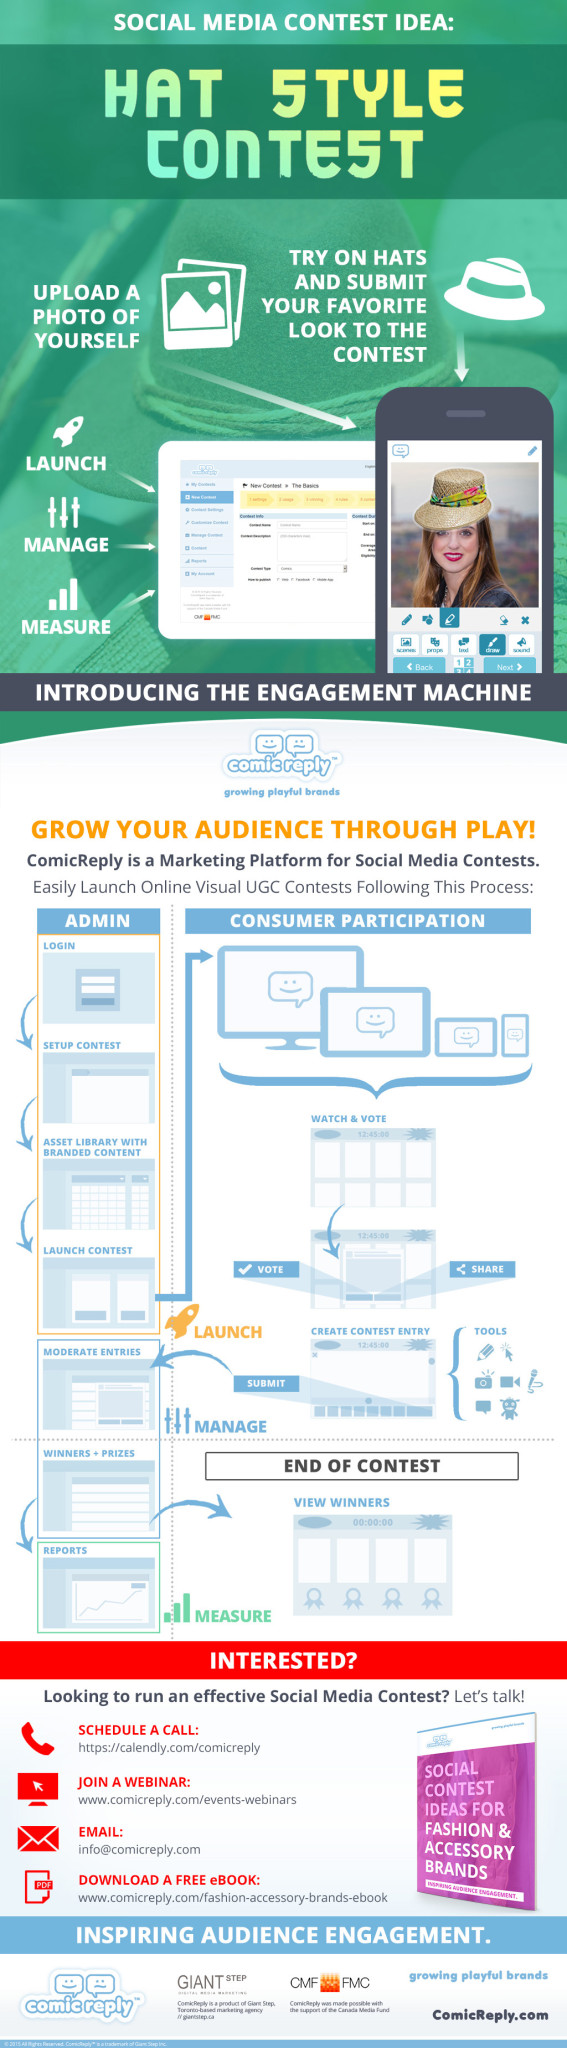 ComicReply-Social-Media-Contest-Idea-For-Fashion-Hat-Marketing-Infographic